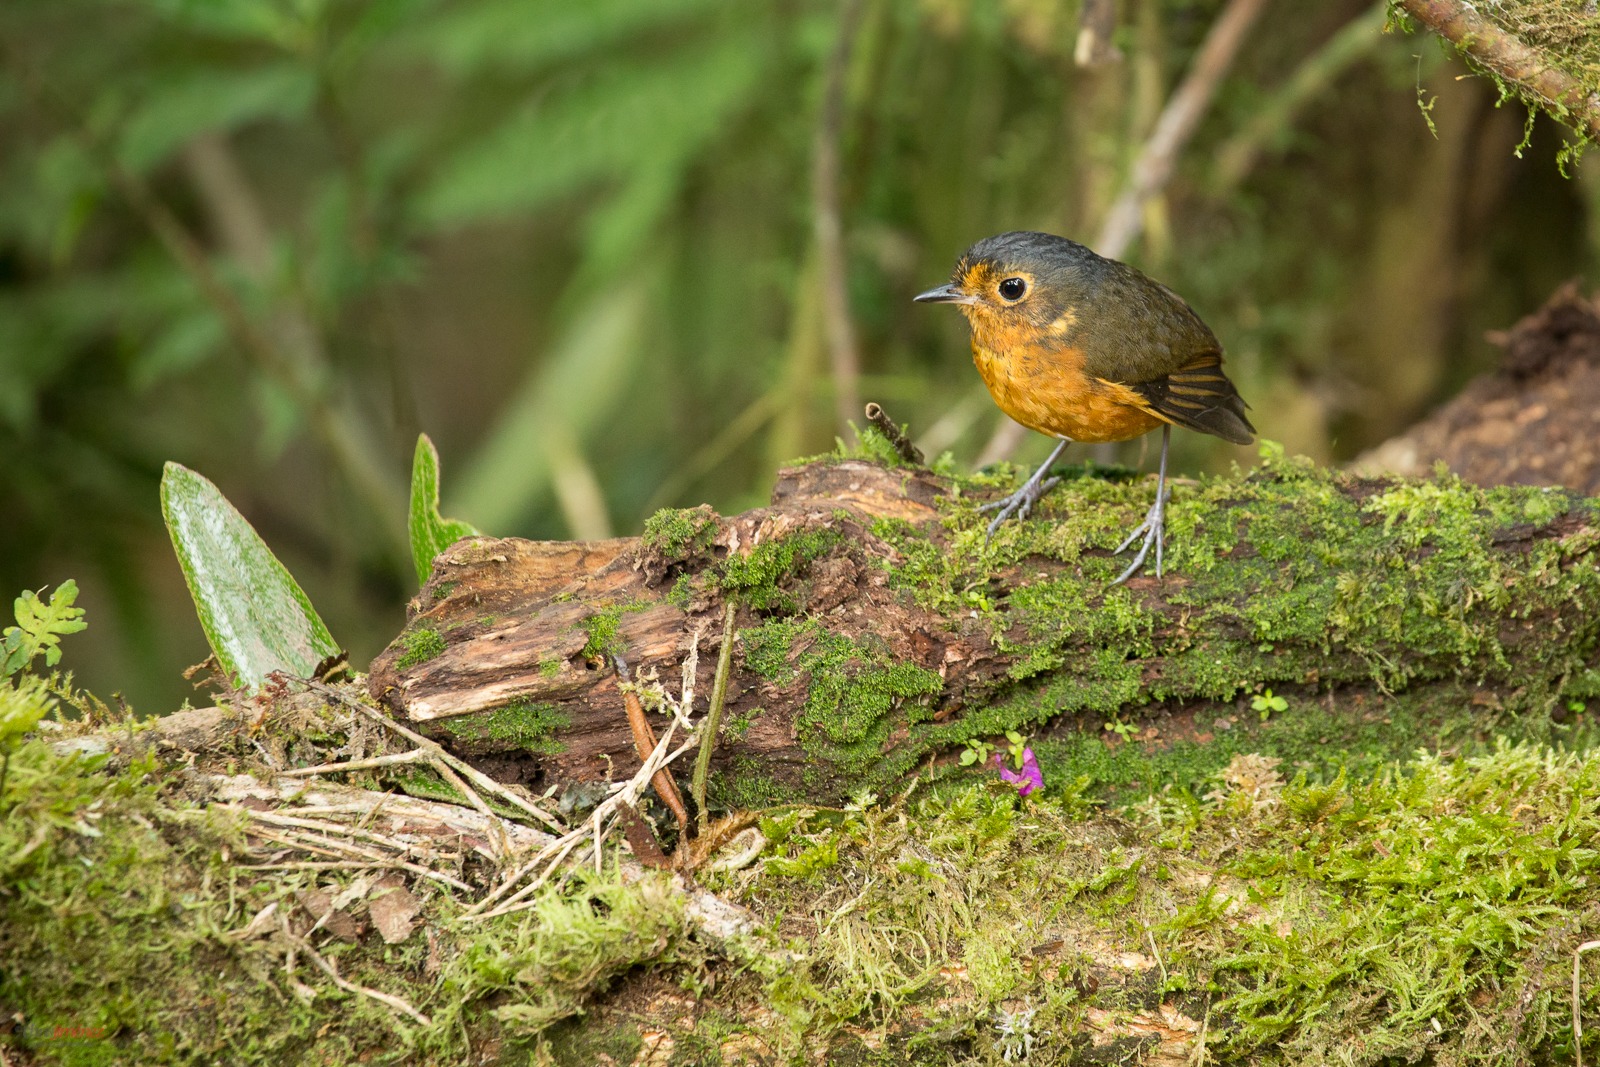 Slate Crowned Antpitta (Grallaricula nana) perched on a branch